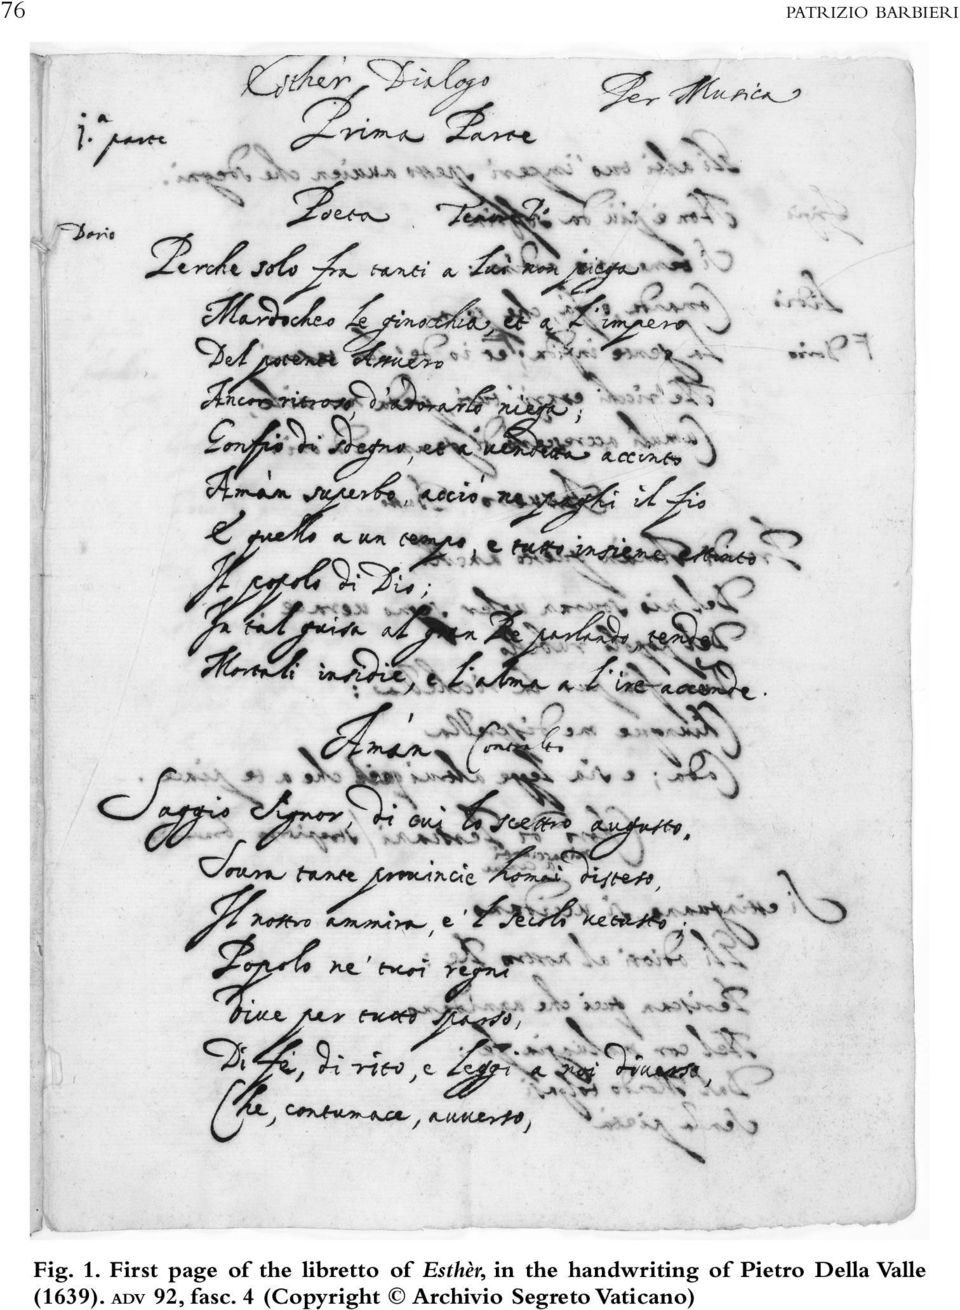 the handwriting of Pietro Della Valle